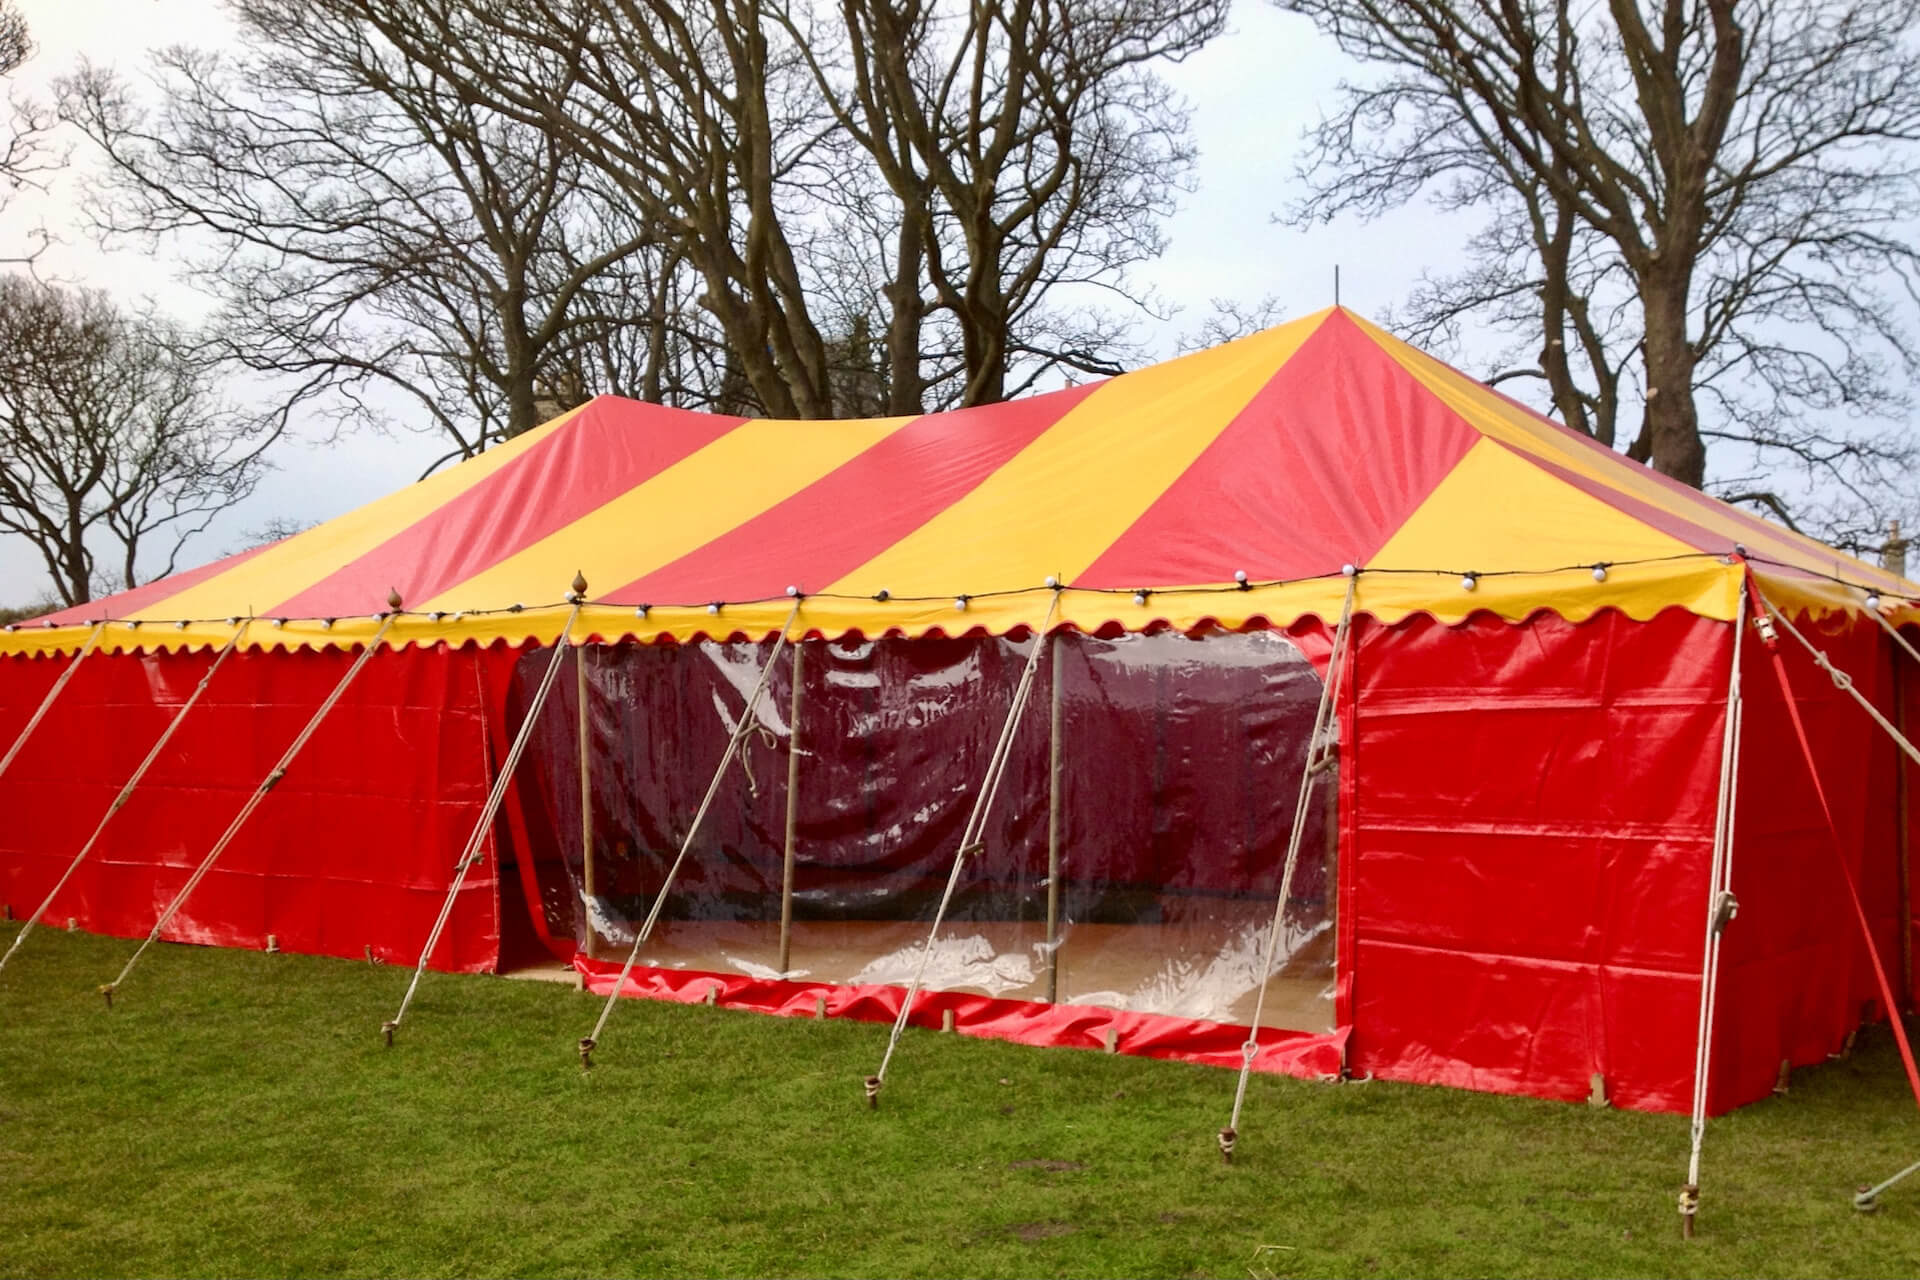 6m x 12m red and yellow rectangular marquee